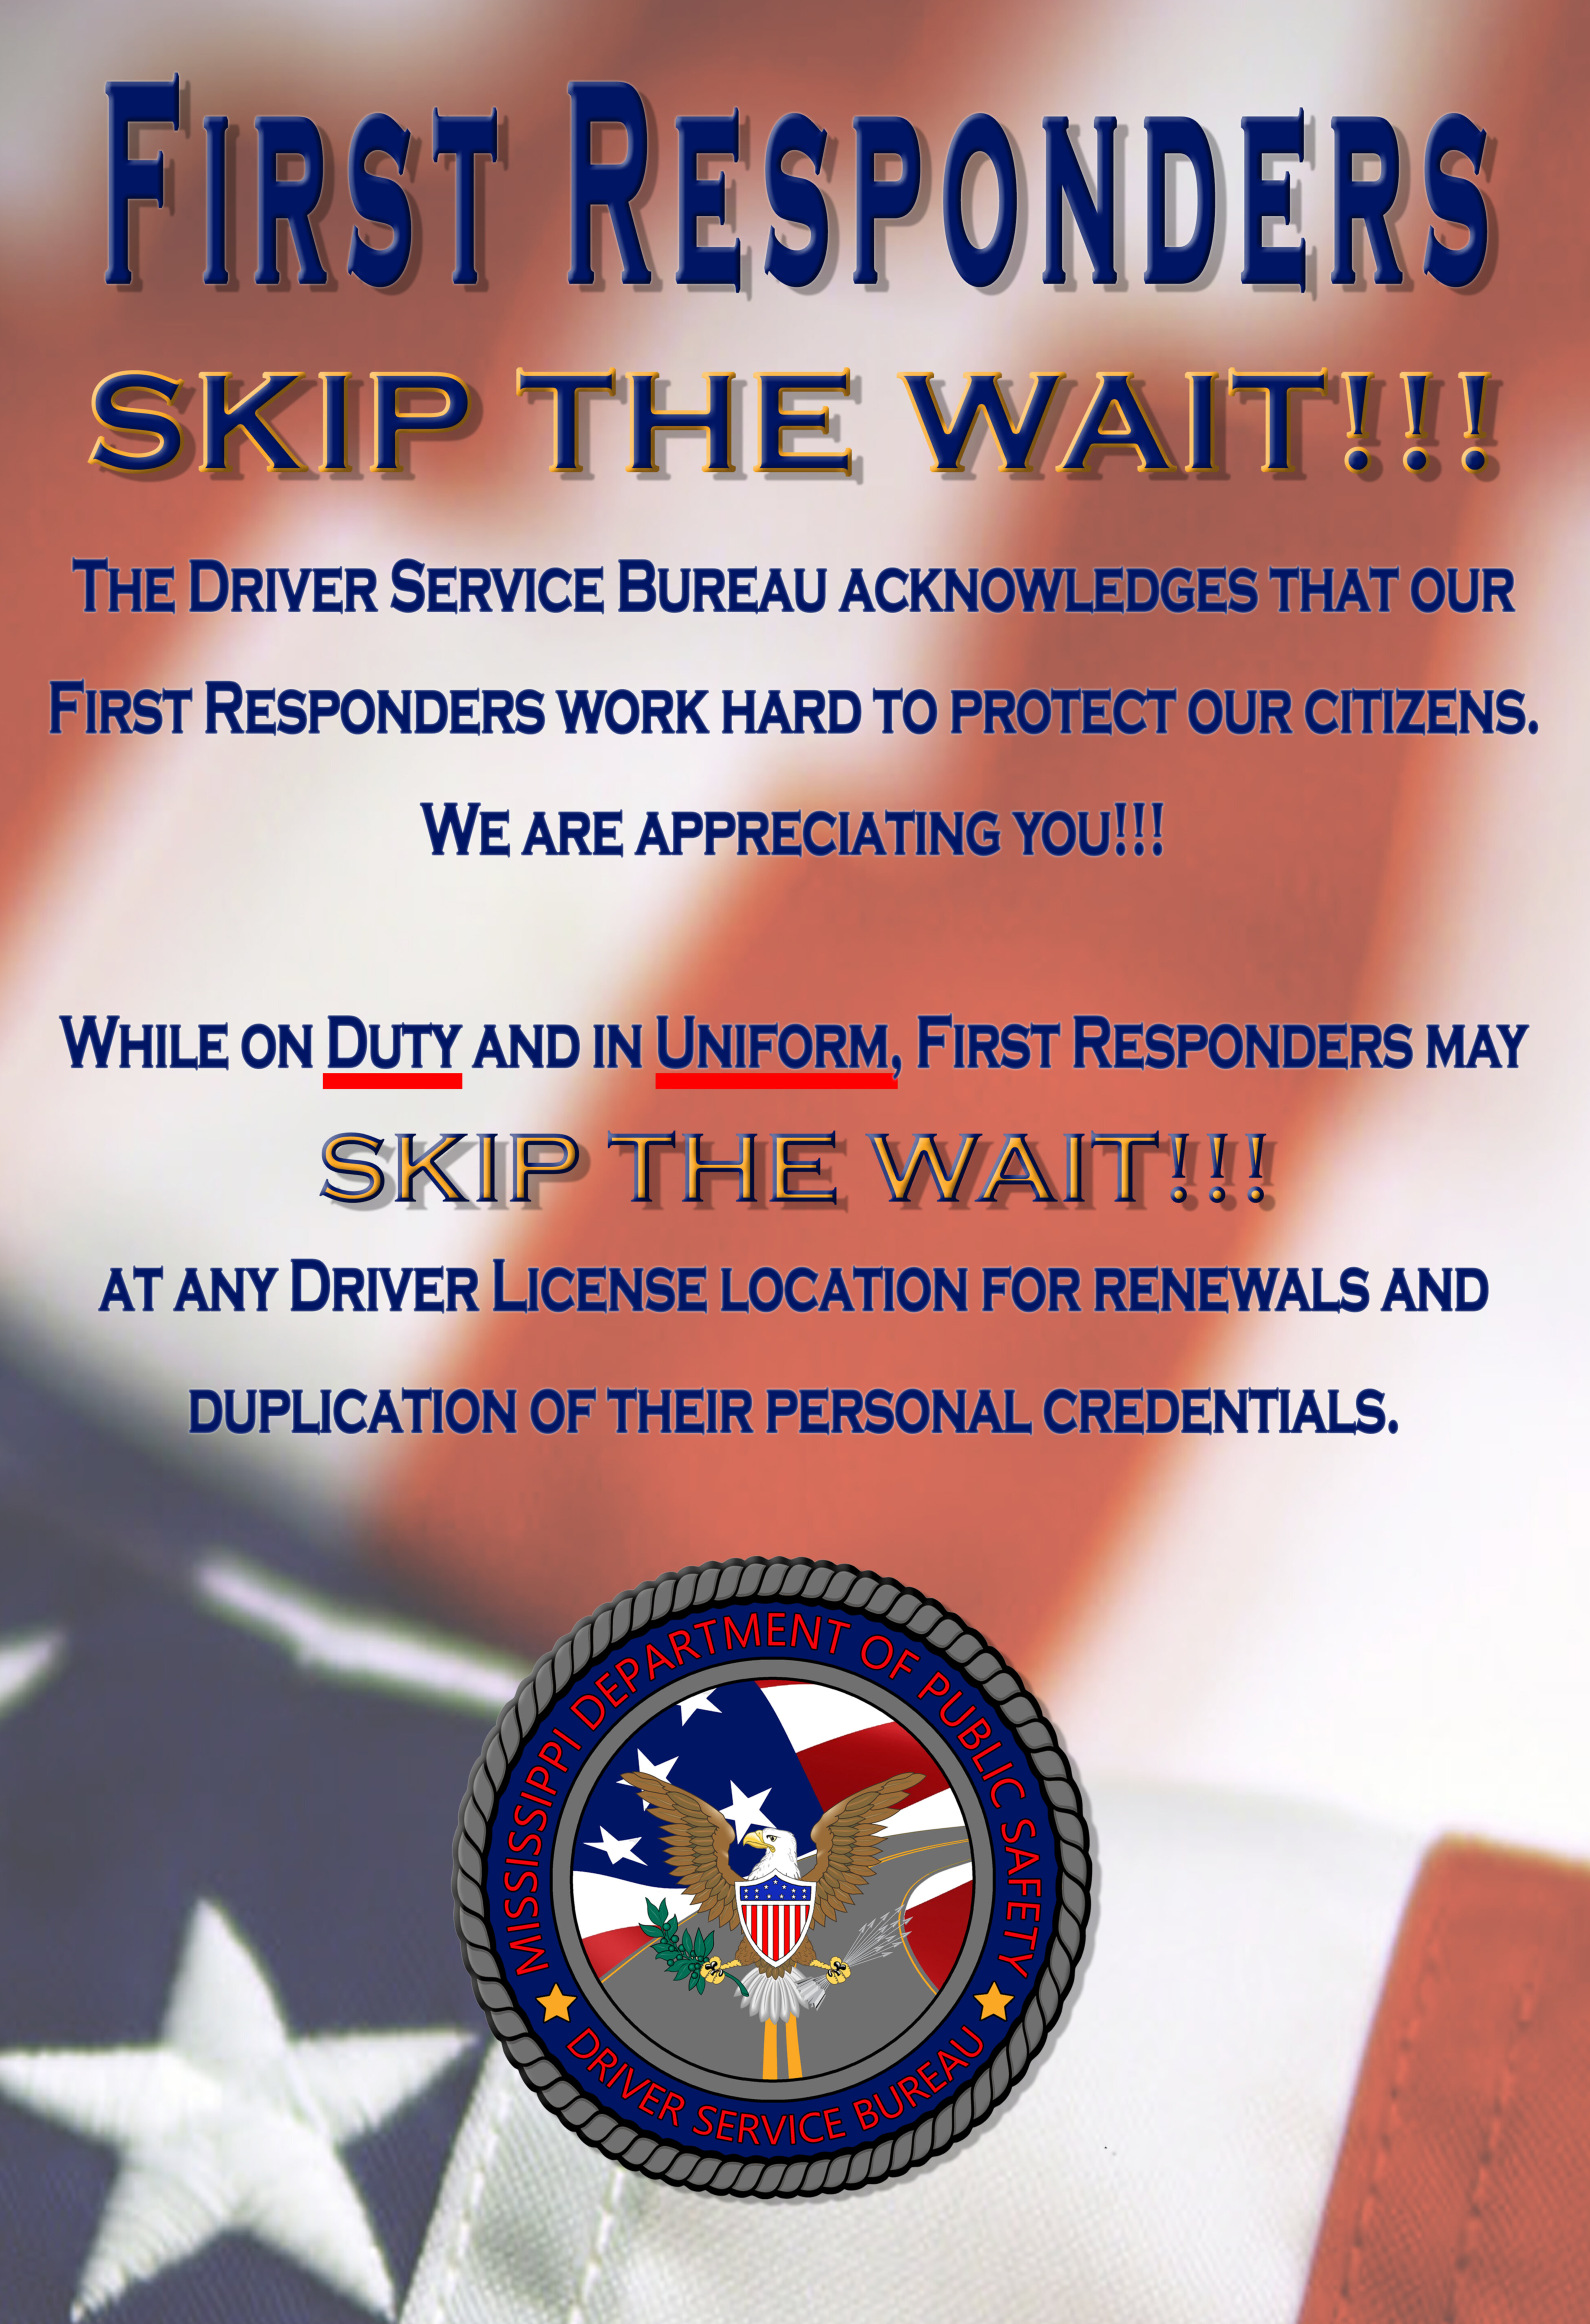 First Responders can Skip the wait.